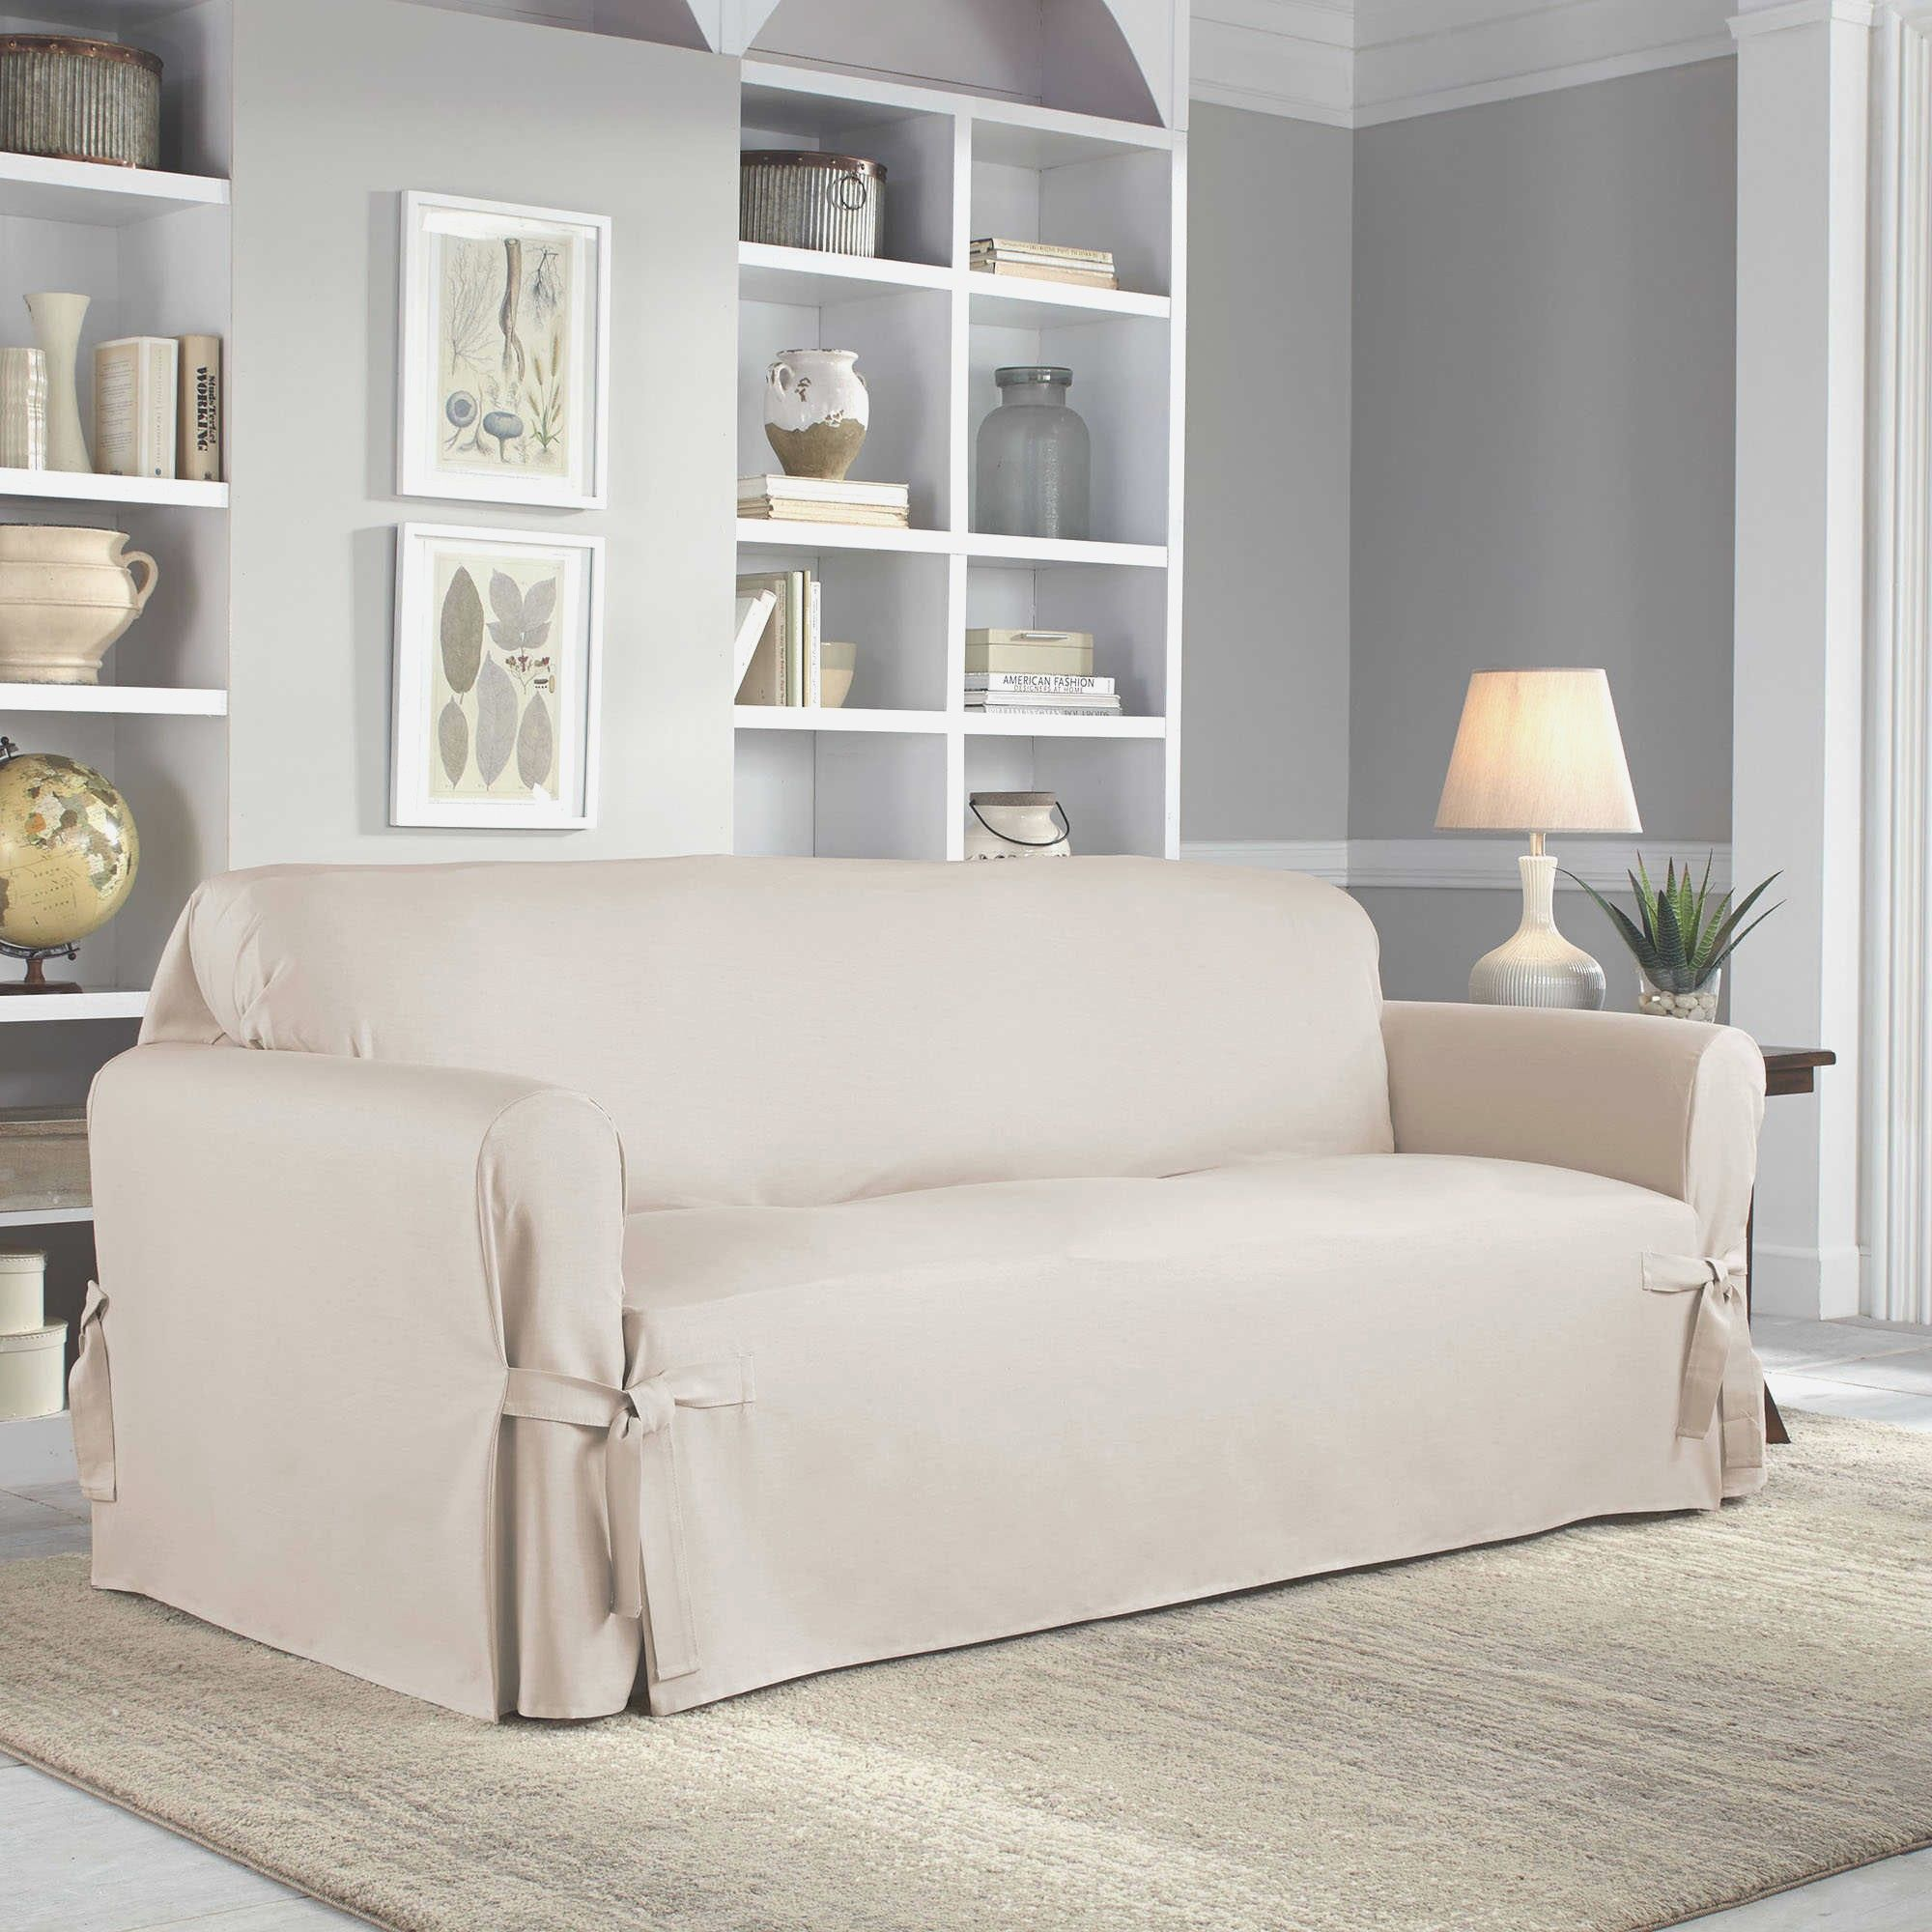 sofa length seater size couches full shaped curved average design loveseat french of a high l